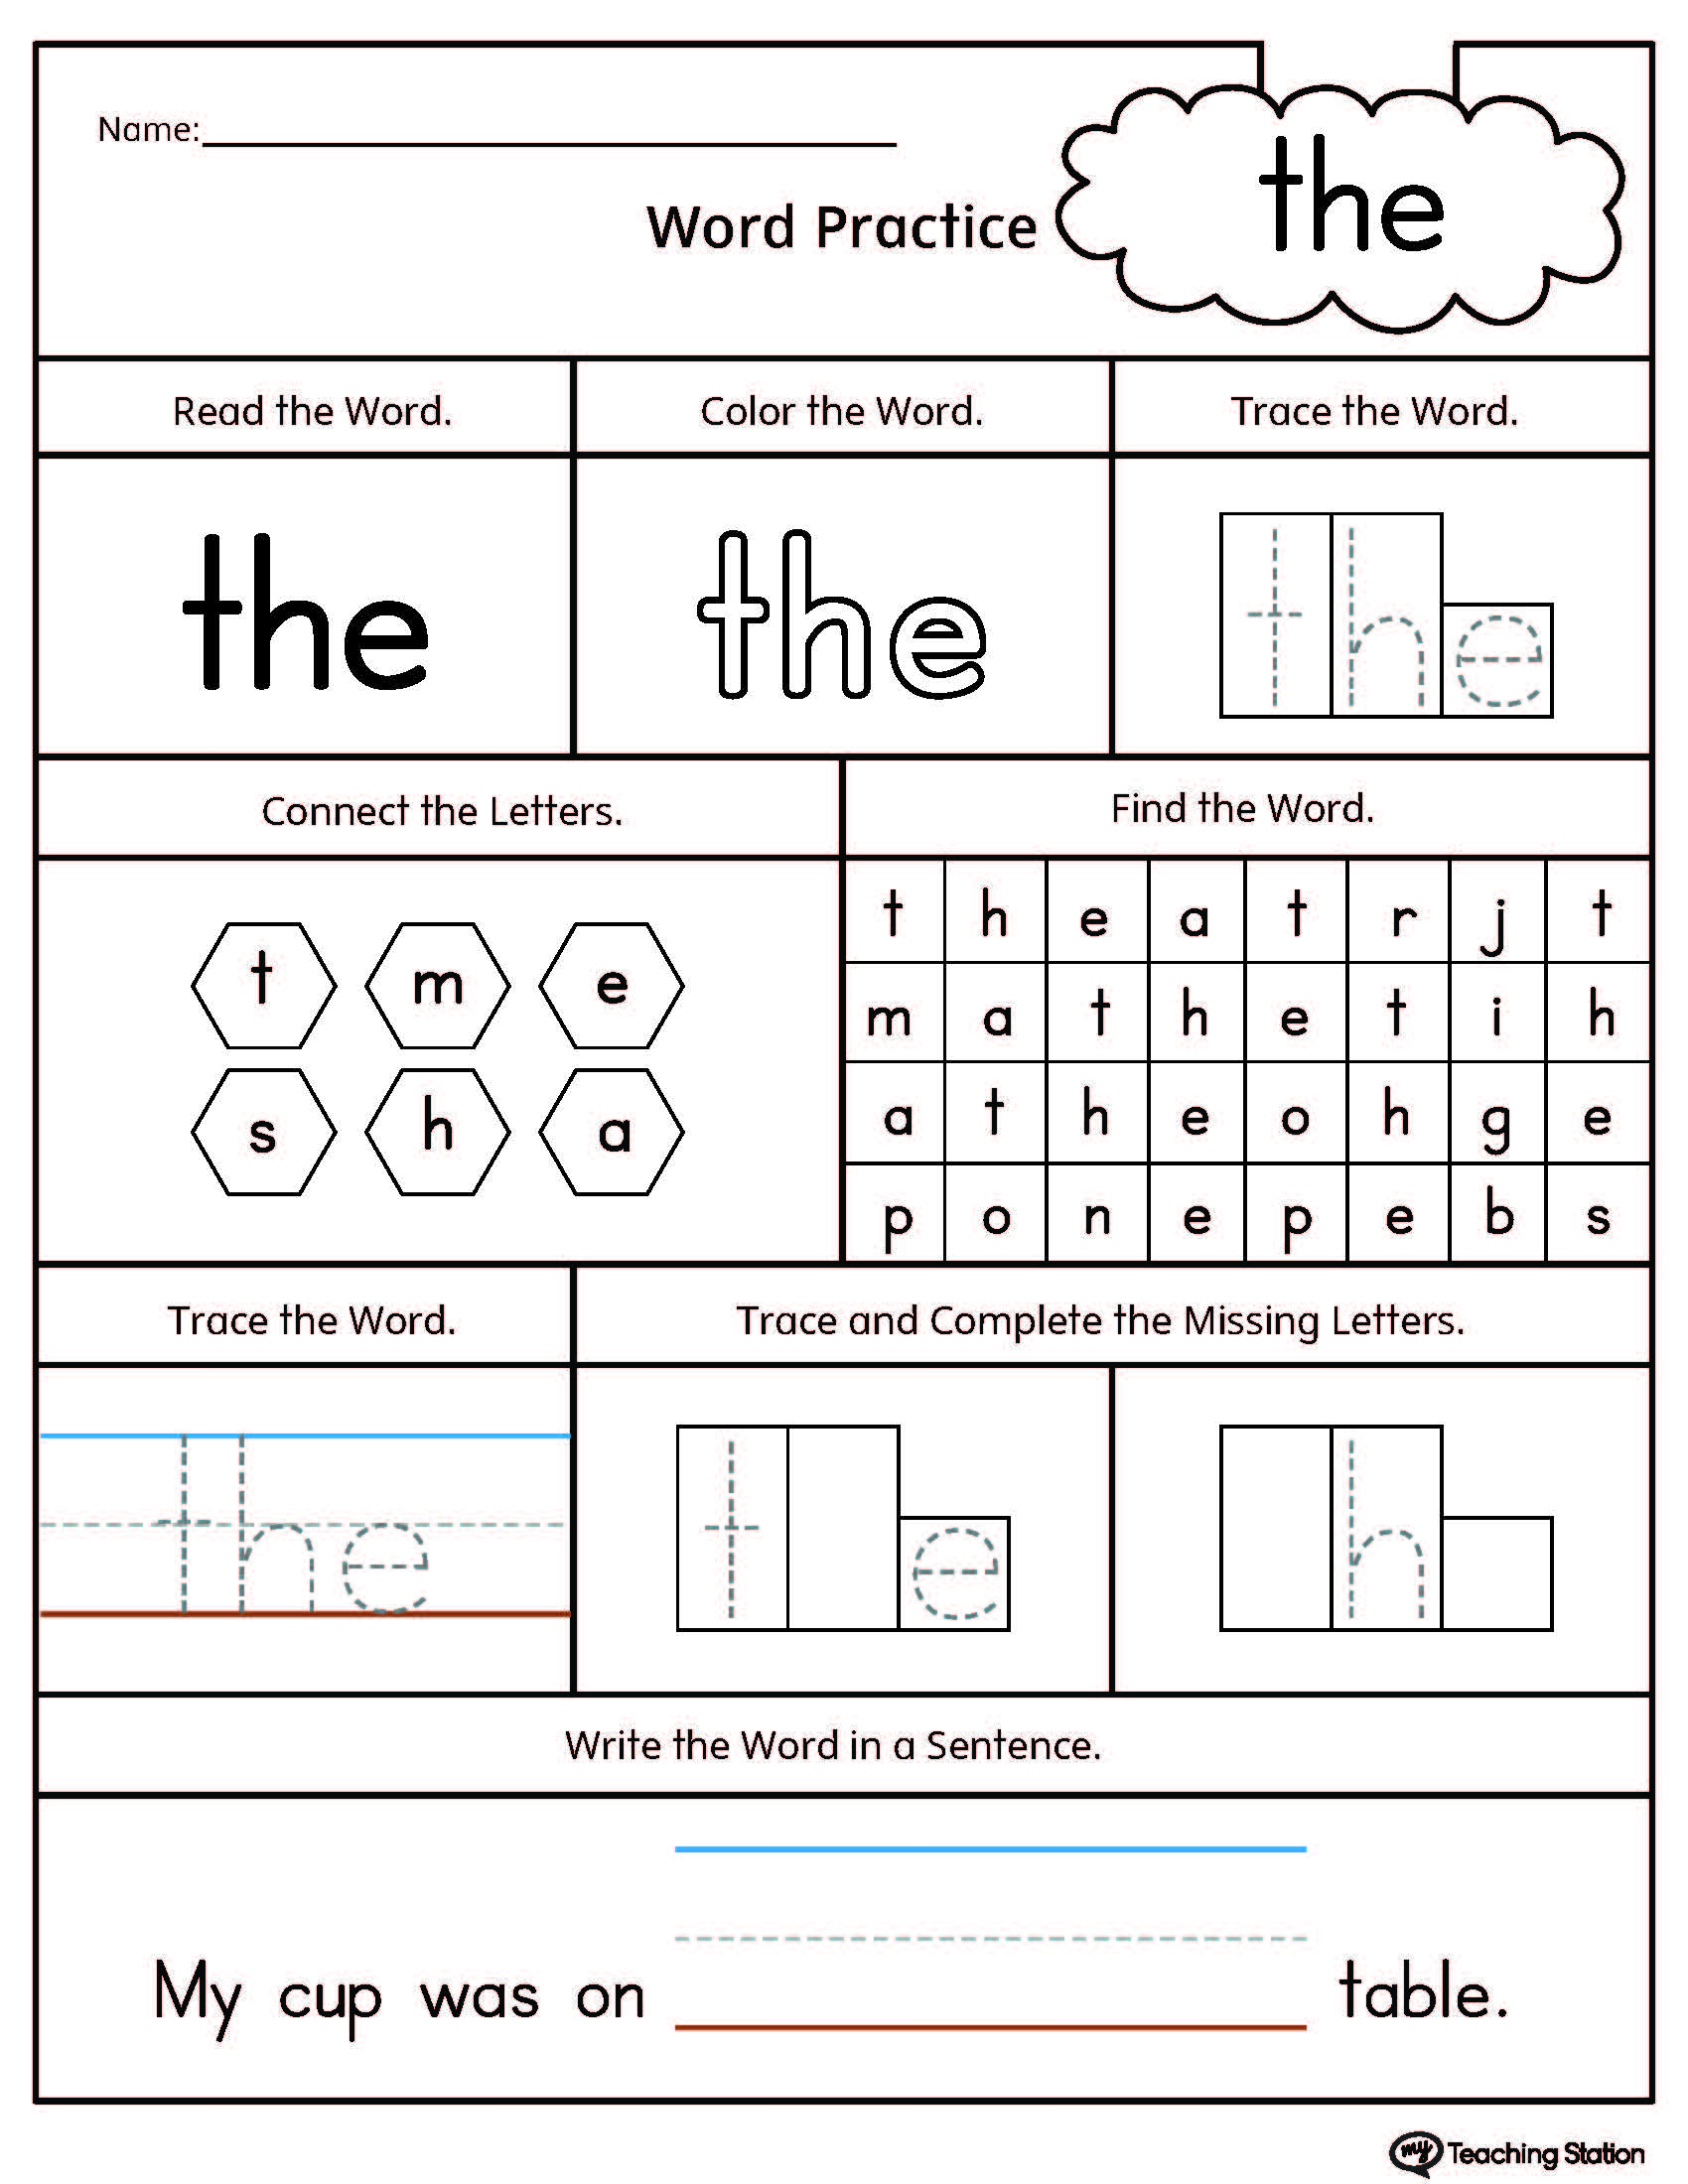 Worksheets Sight Word Worksheets high frequency words printable worksheets myteachingstation com sight word the worksheet